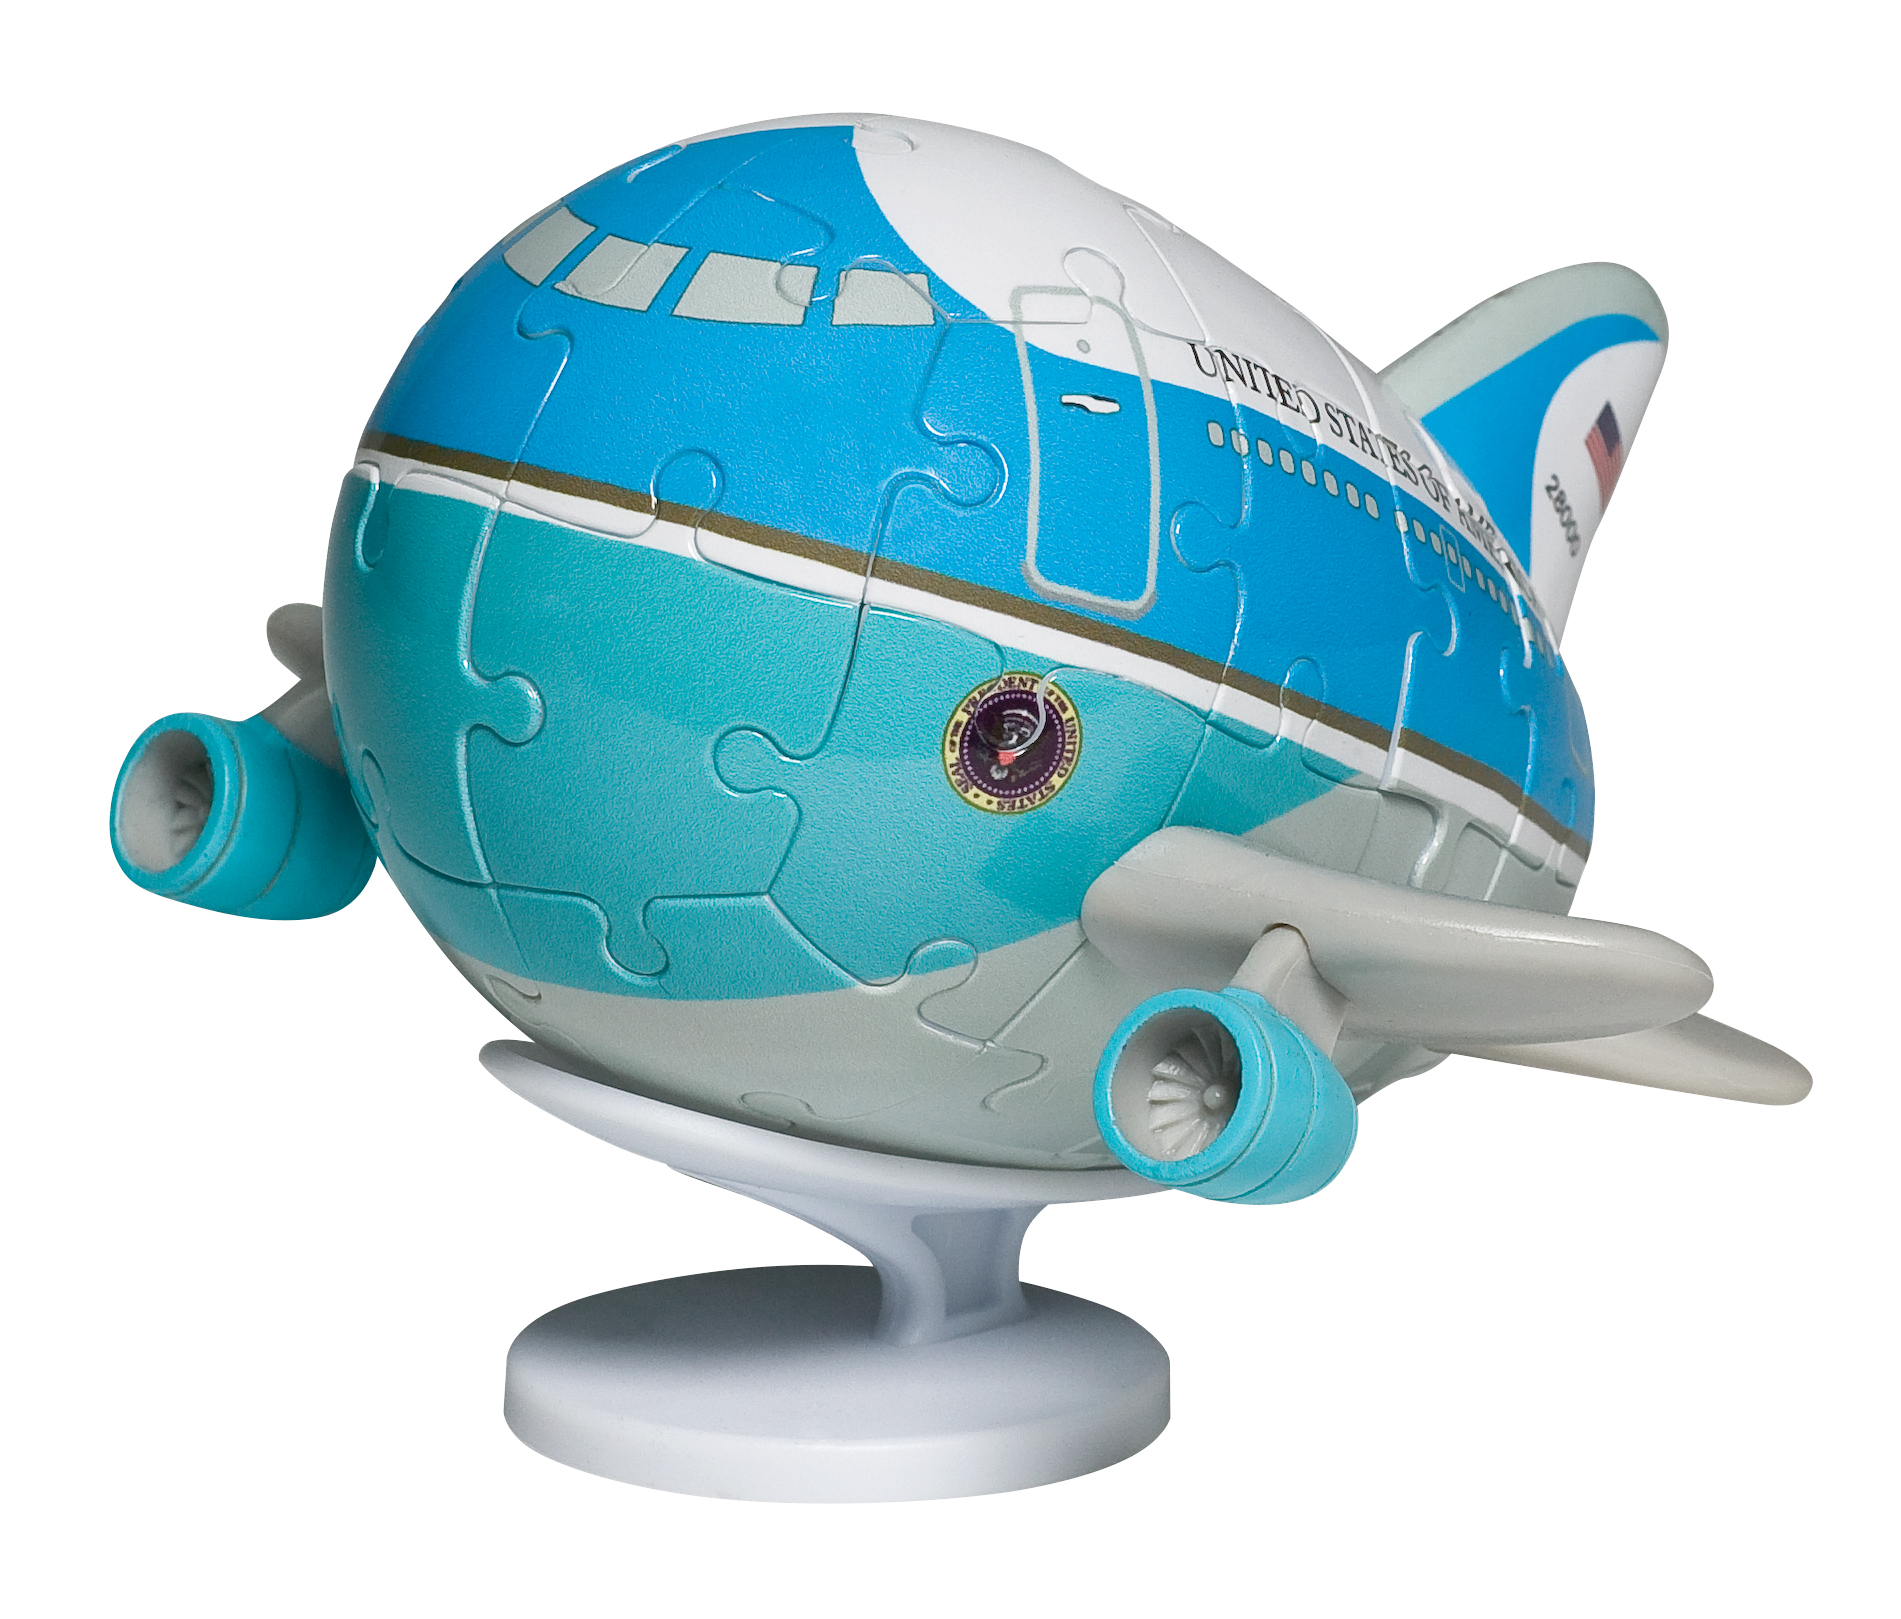 """UT60007 - """"air Force One Puzzle Plane """""""